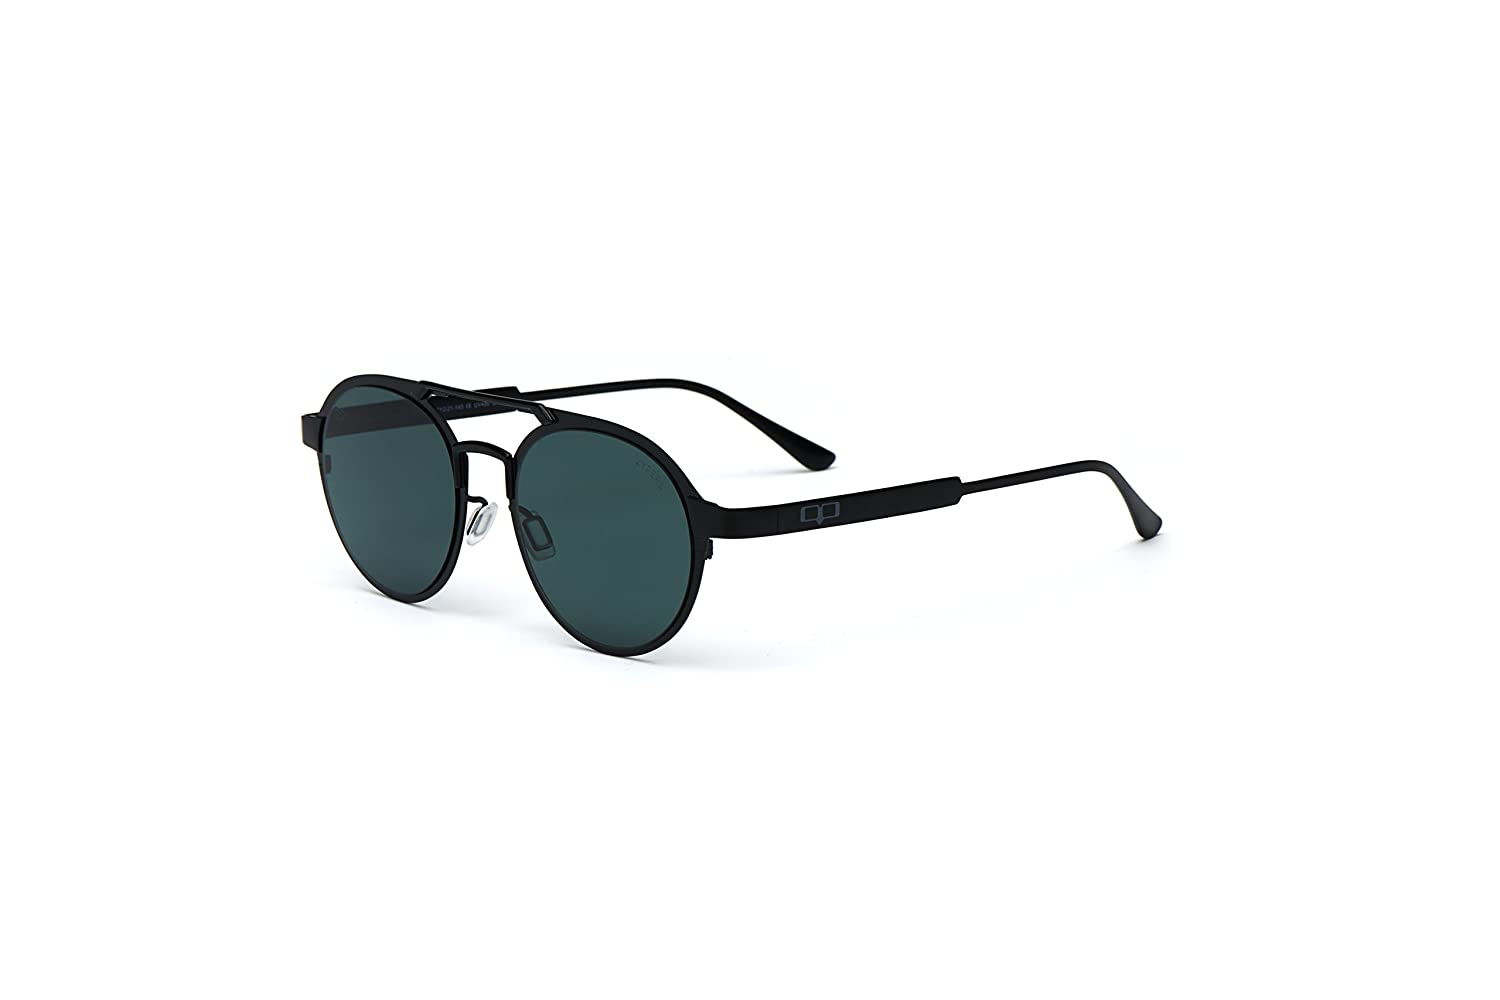 GAFAS DE SOL KYPERS GRAND PRIX GP 004 CARBONO: Amazon.es ...